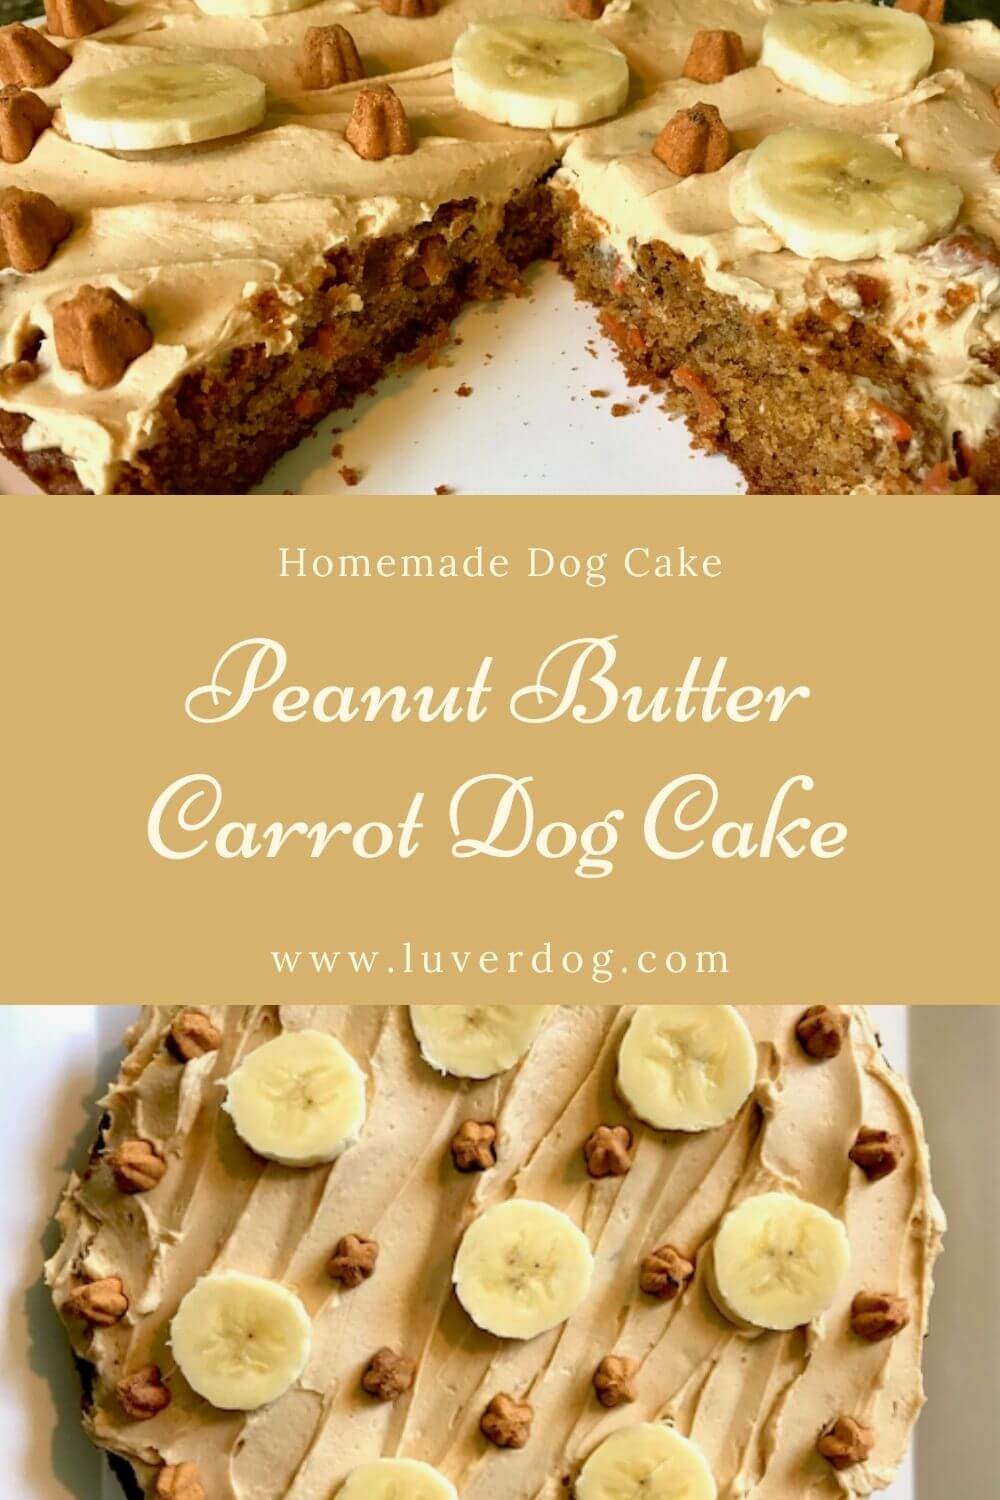 Peanut Butter and Carrot Dog Cake